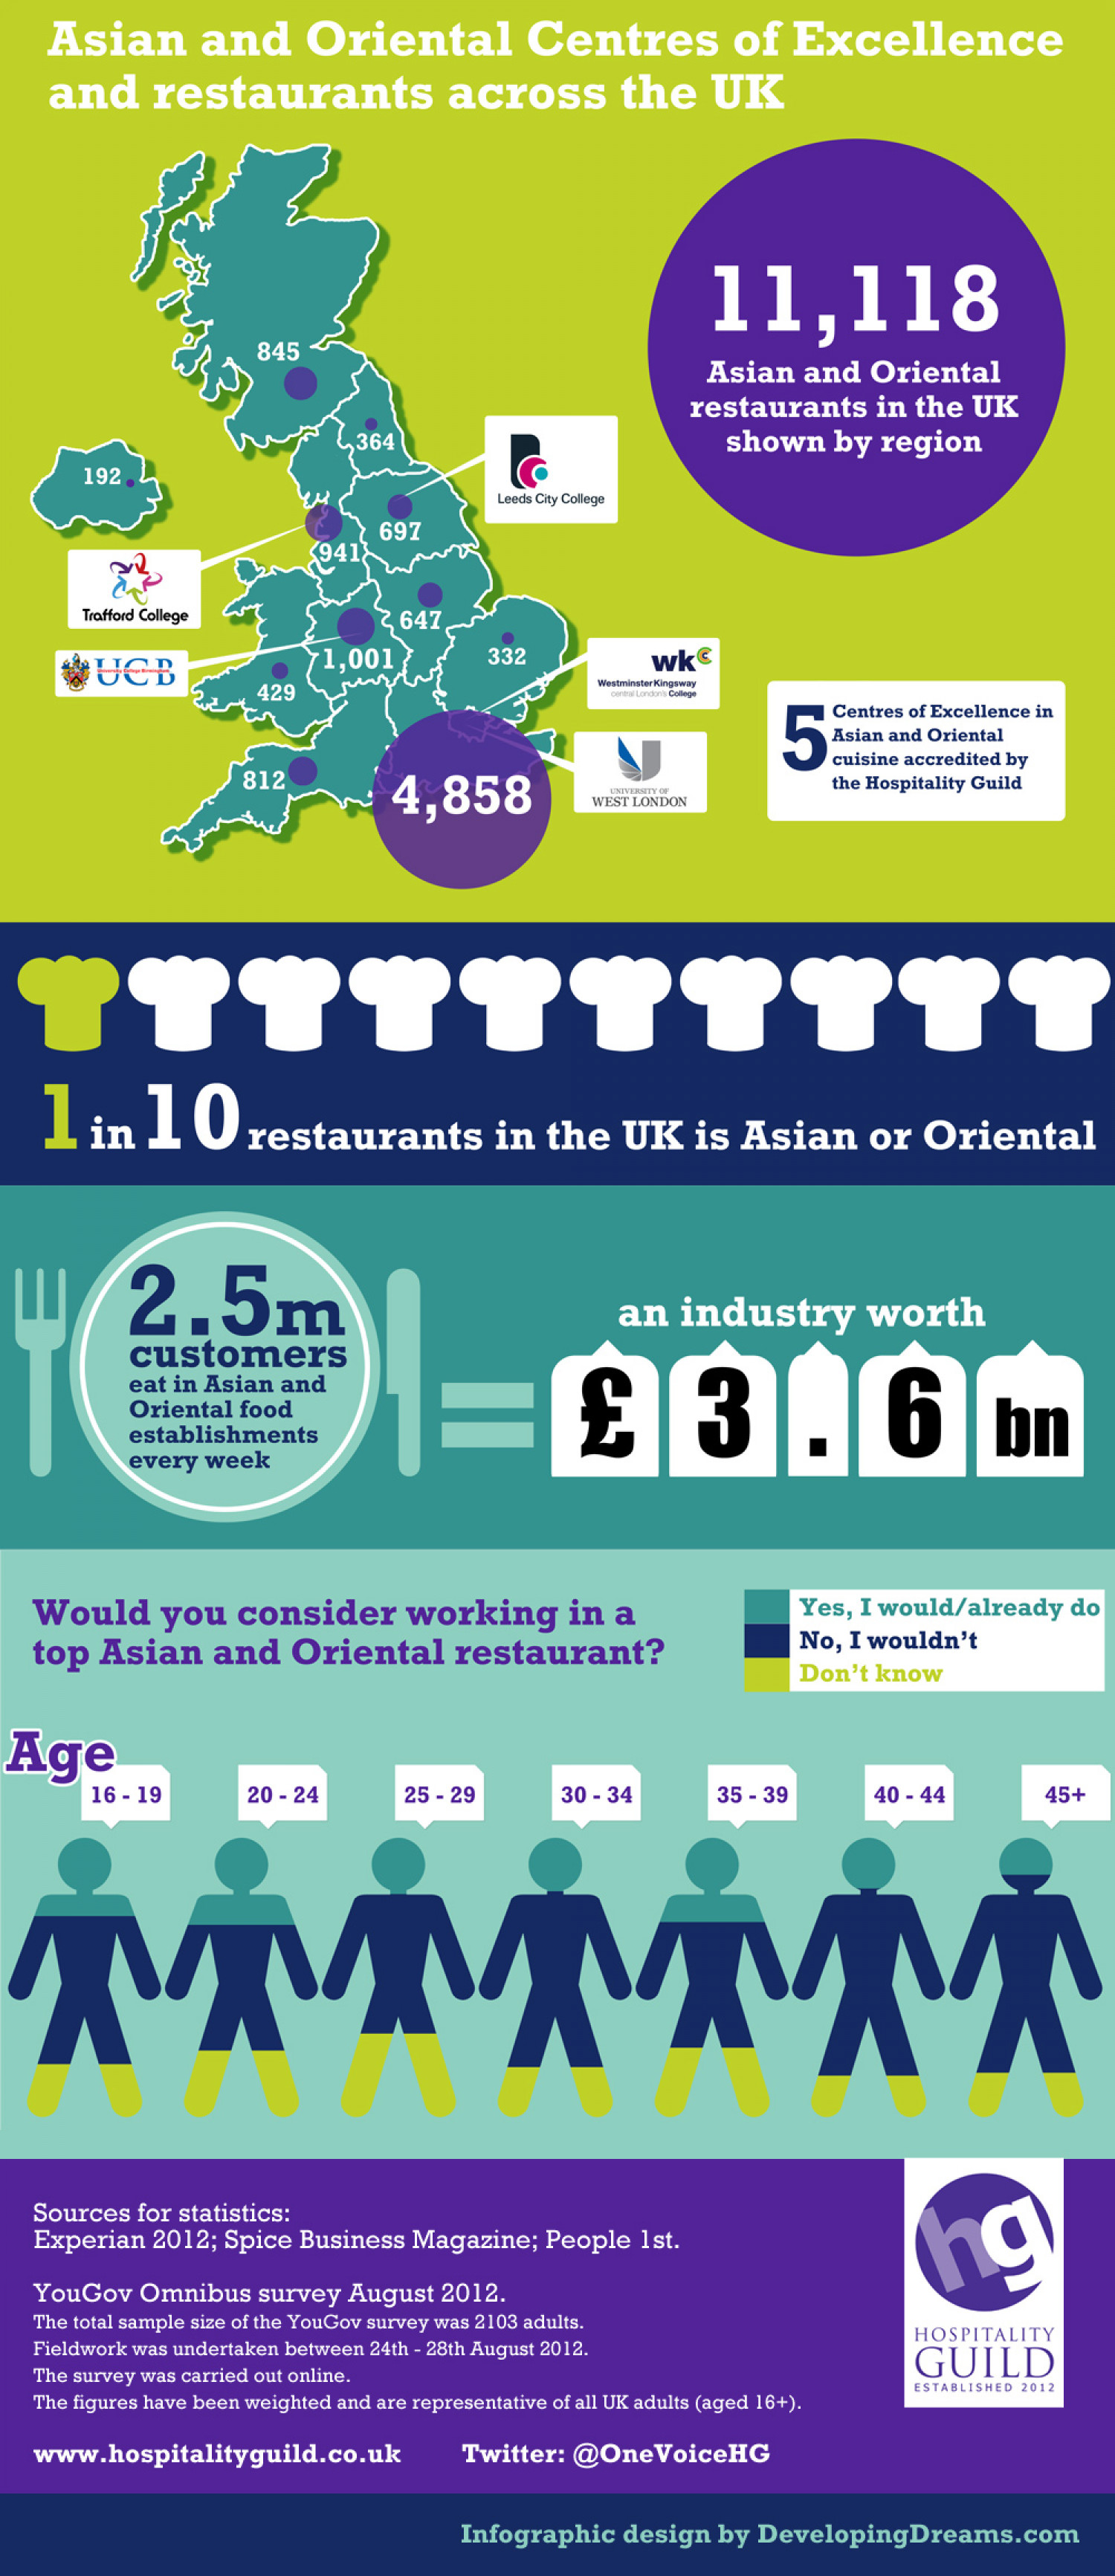 Asian and Oriental restaurants across the UK Infographic